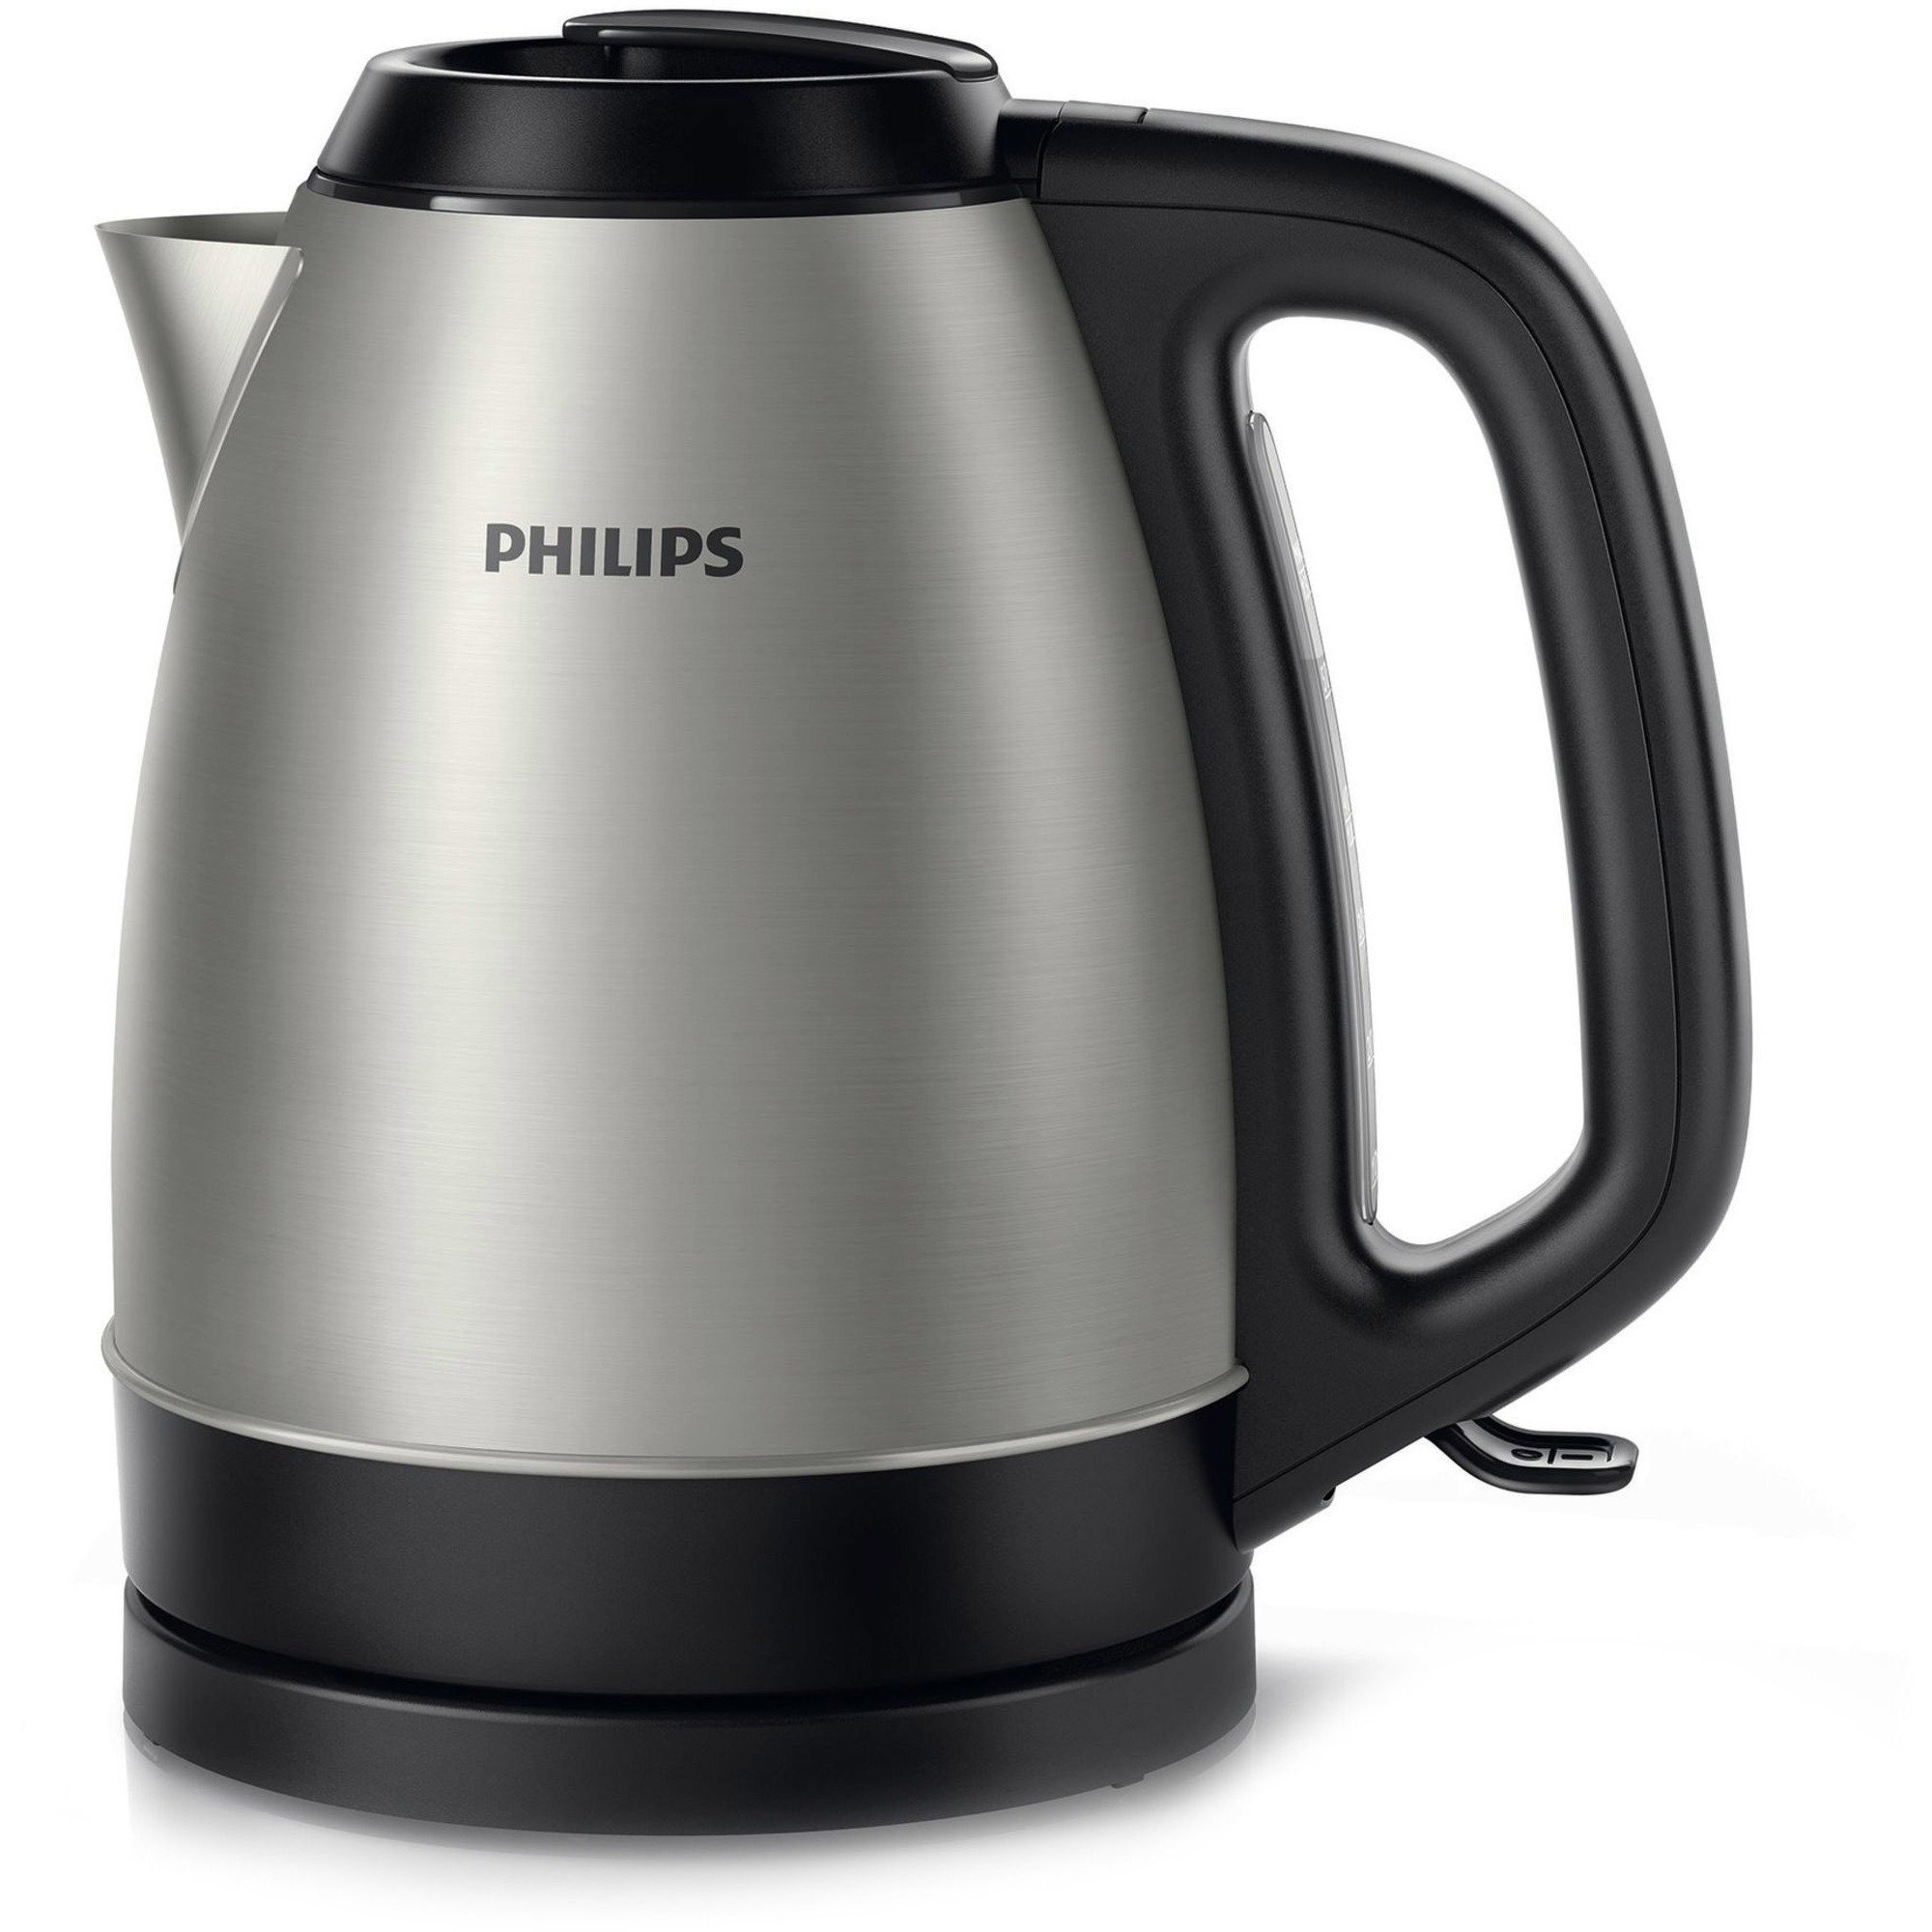 Philips HD9305/20 Elkande 15l metal